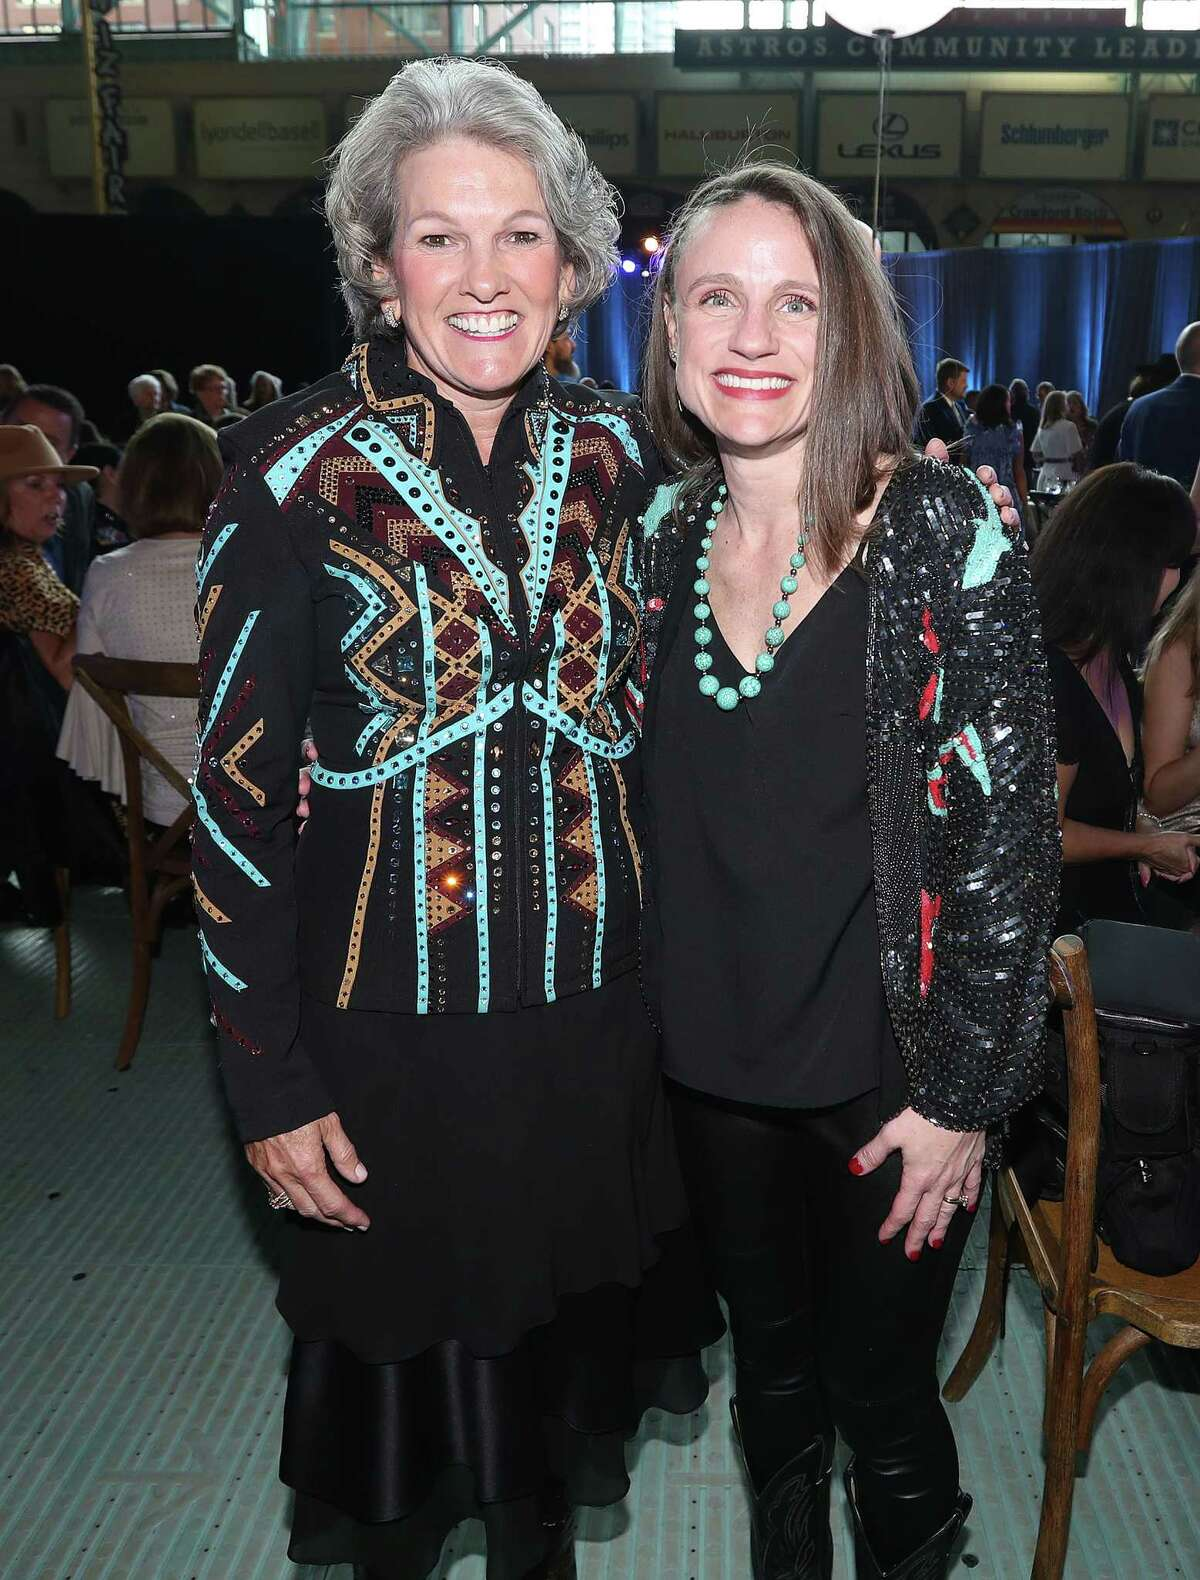 Twila Carter, left, and Nicole Cassier-Masonduring the Astros Foundation's sixth annual Diamond Dreams Gala presented by Chevron, featuring singer-songwriter and Texas native Lyle Lovett and his Large Band on the field at Minute Maid Park, Thursday, September 9, 2021, in Houston.